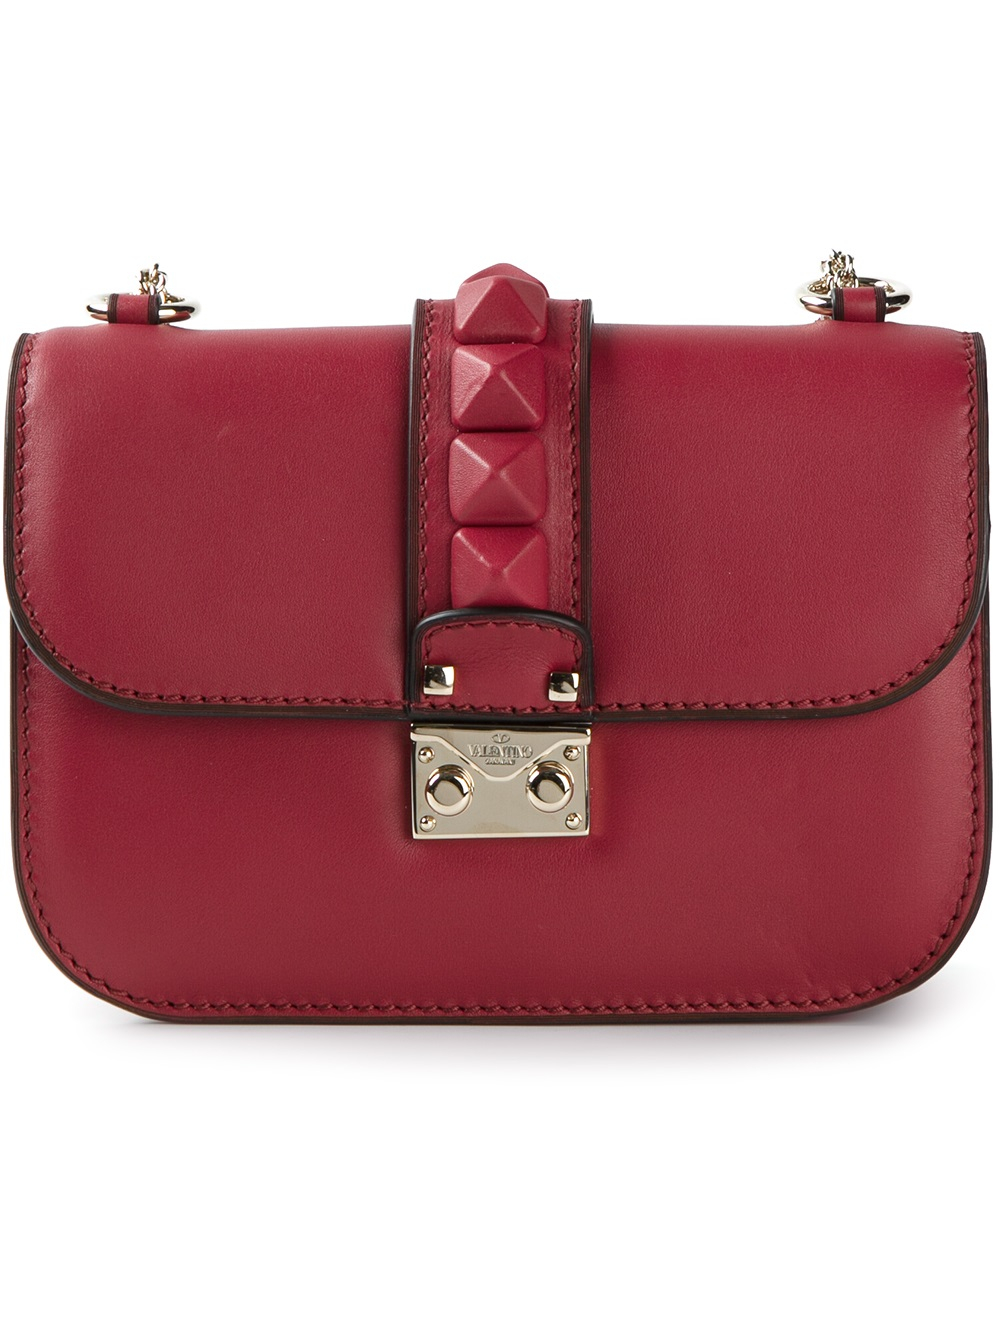 lyst valentino glam lock shoulder bag in red